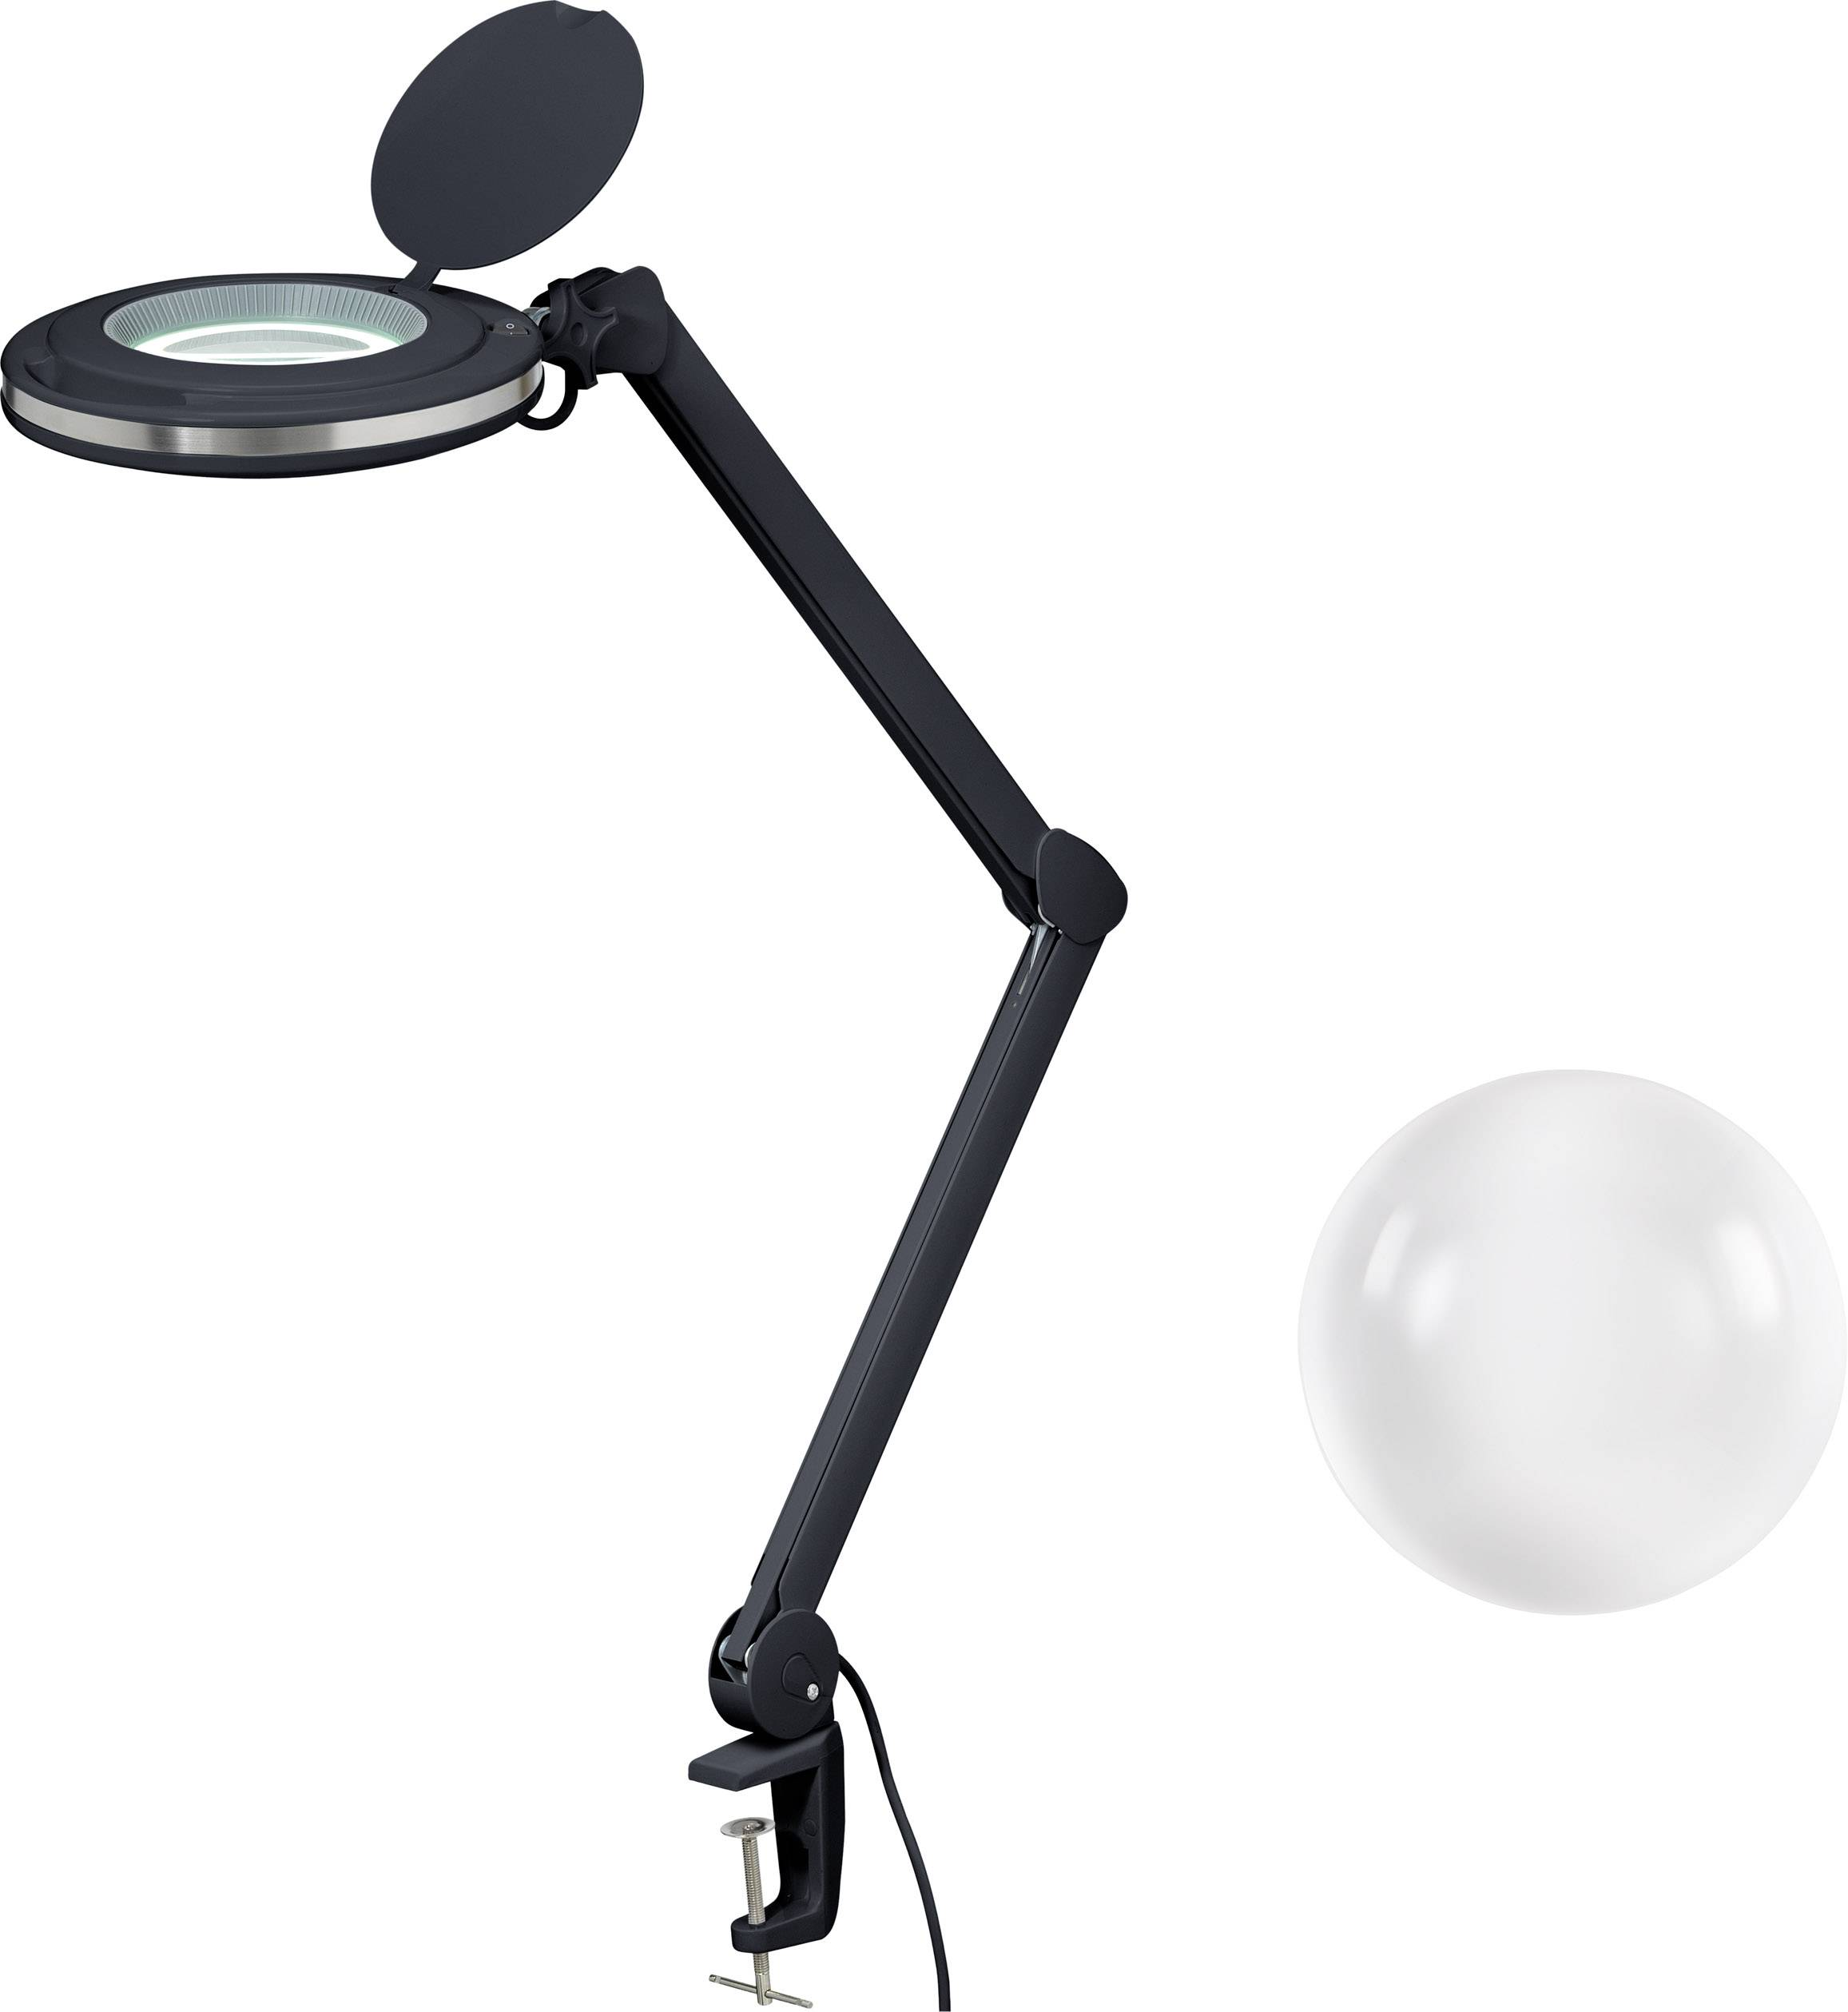 Toolcraft 2178491 Led Magnifying Lamp Black 5 127 Mm With Clamp Holder 5d 2 25x Conrad Com